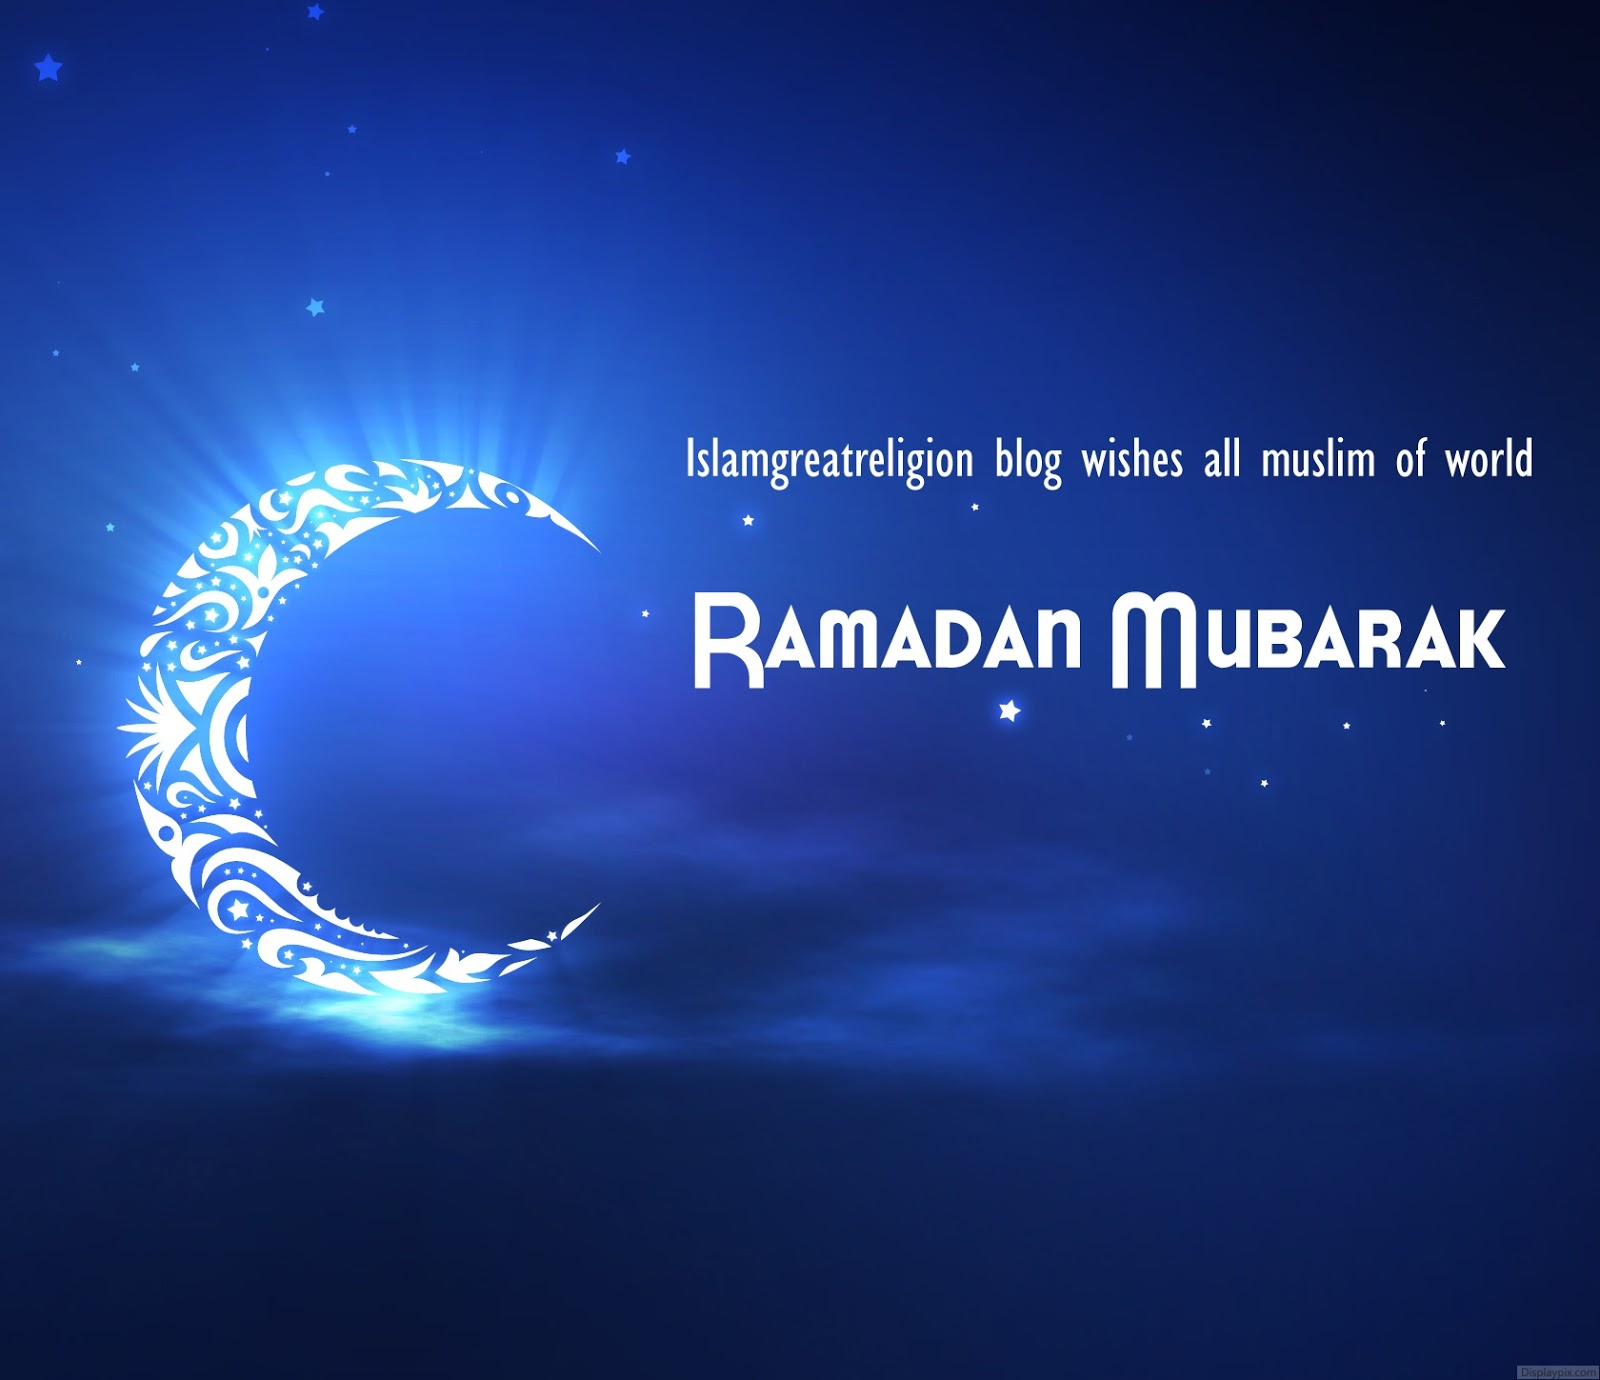 Eid al fitr 2016 Quotes & Wishes | Eid Mubarak Cards 2016 ...